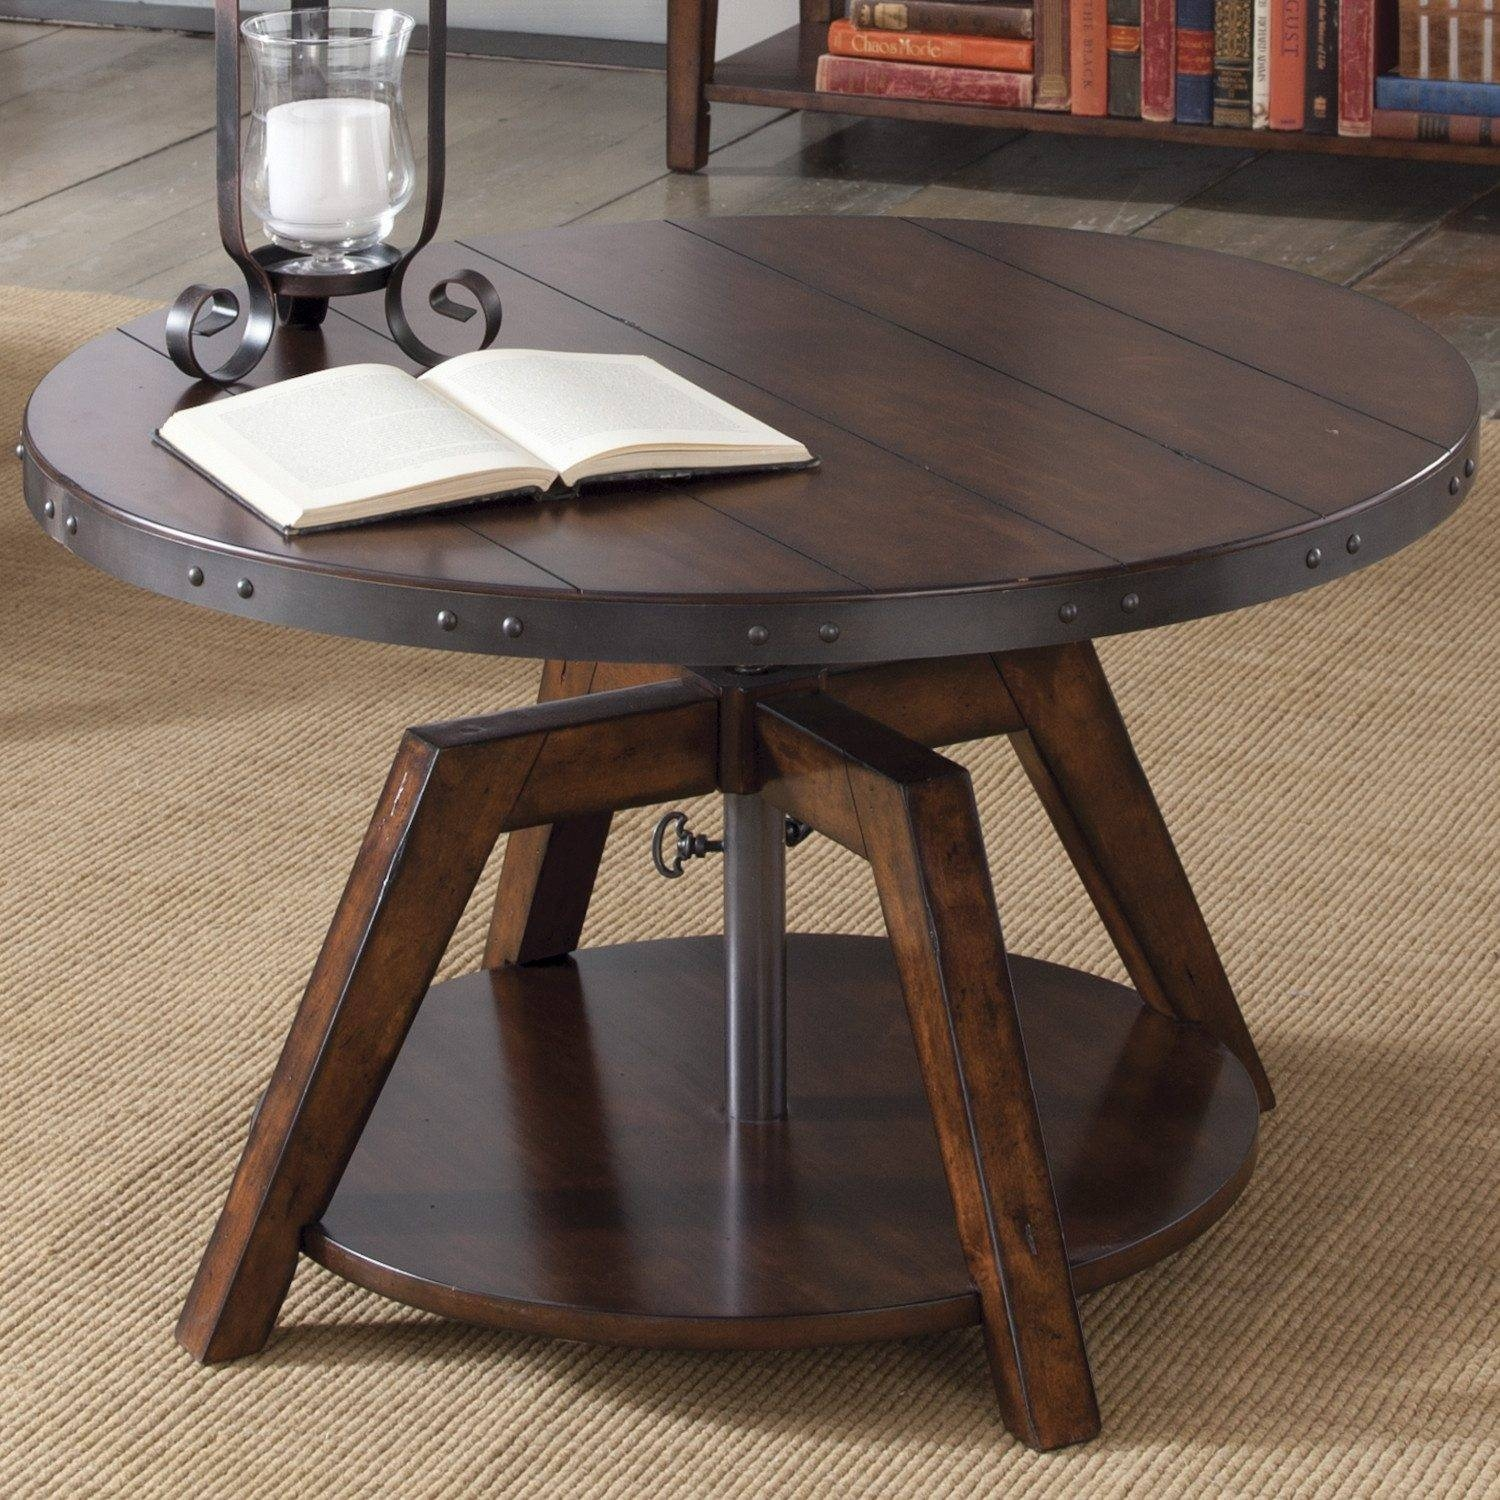 New Coffee Table Converts To Dining Table 39 About Remodel with Coffee Table to Dining Table (Image 21 of 30)